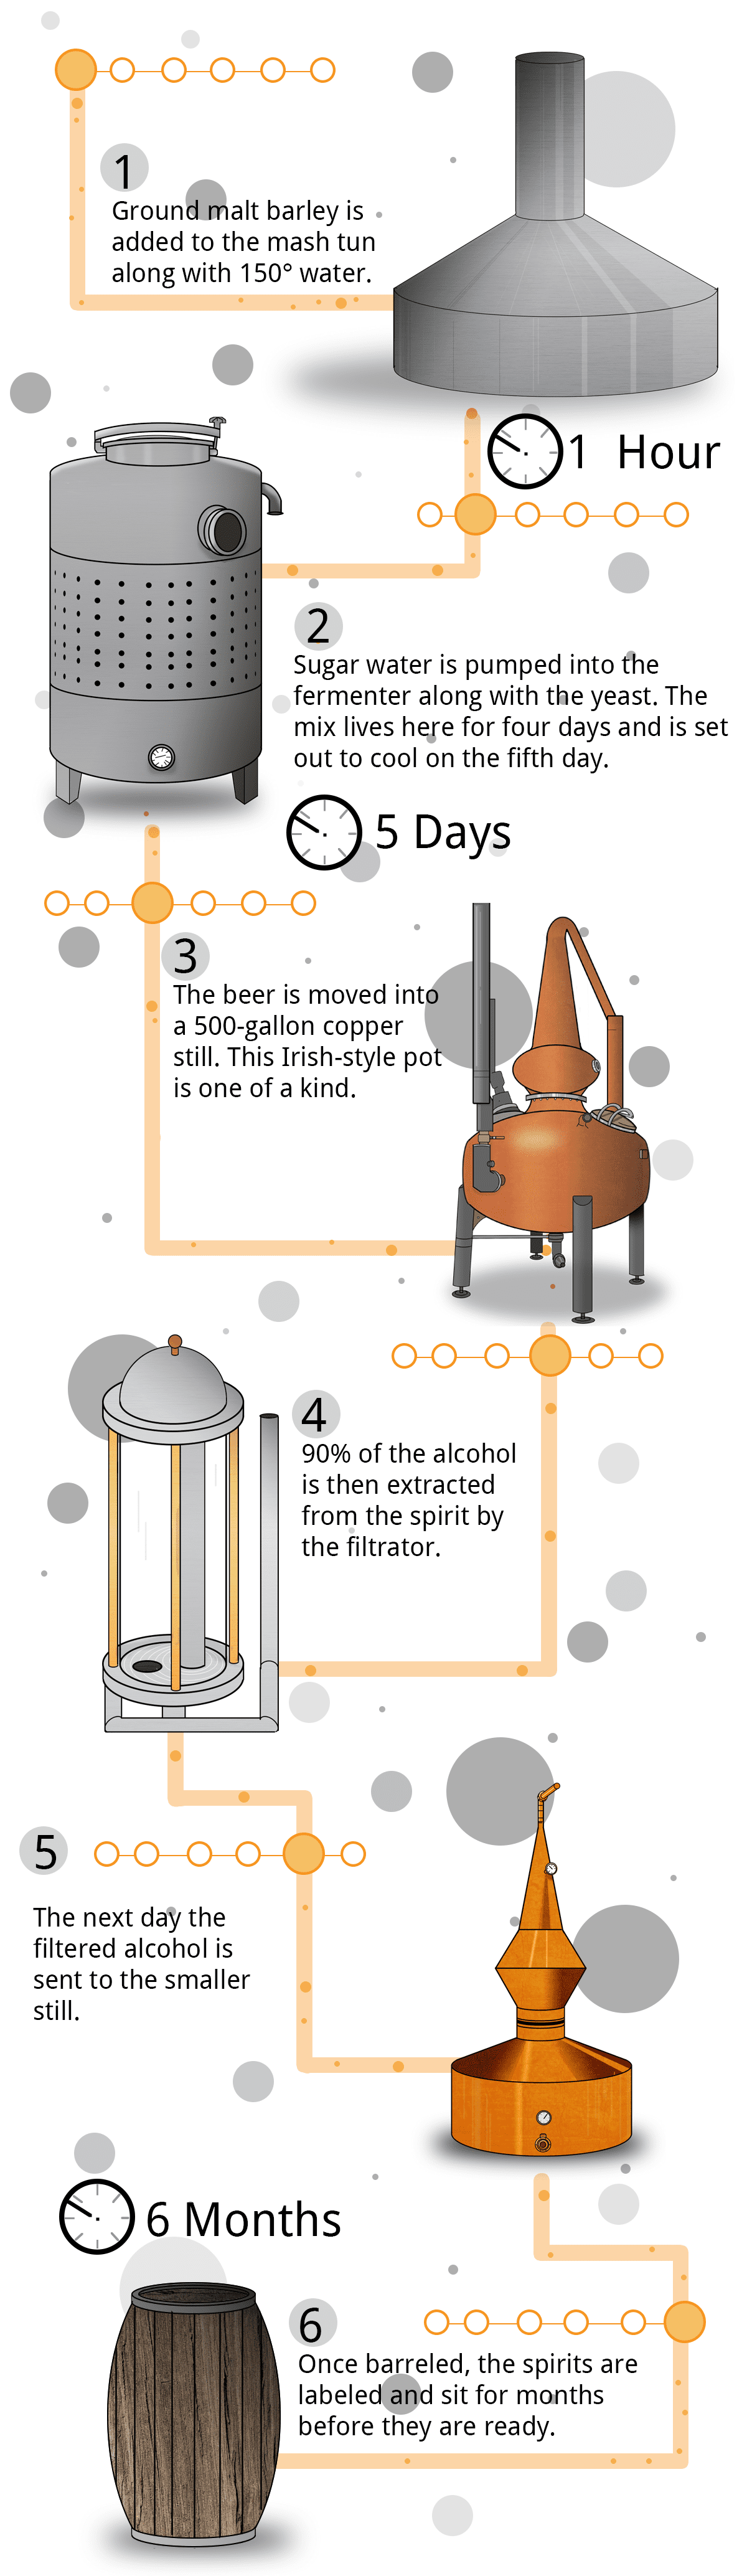 A graphic representation of the distillation process